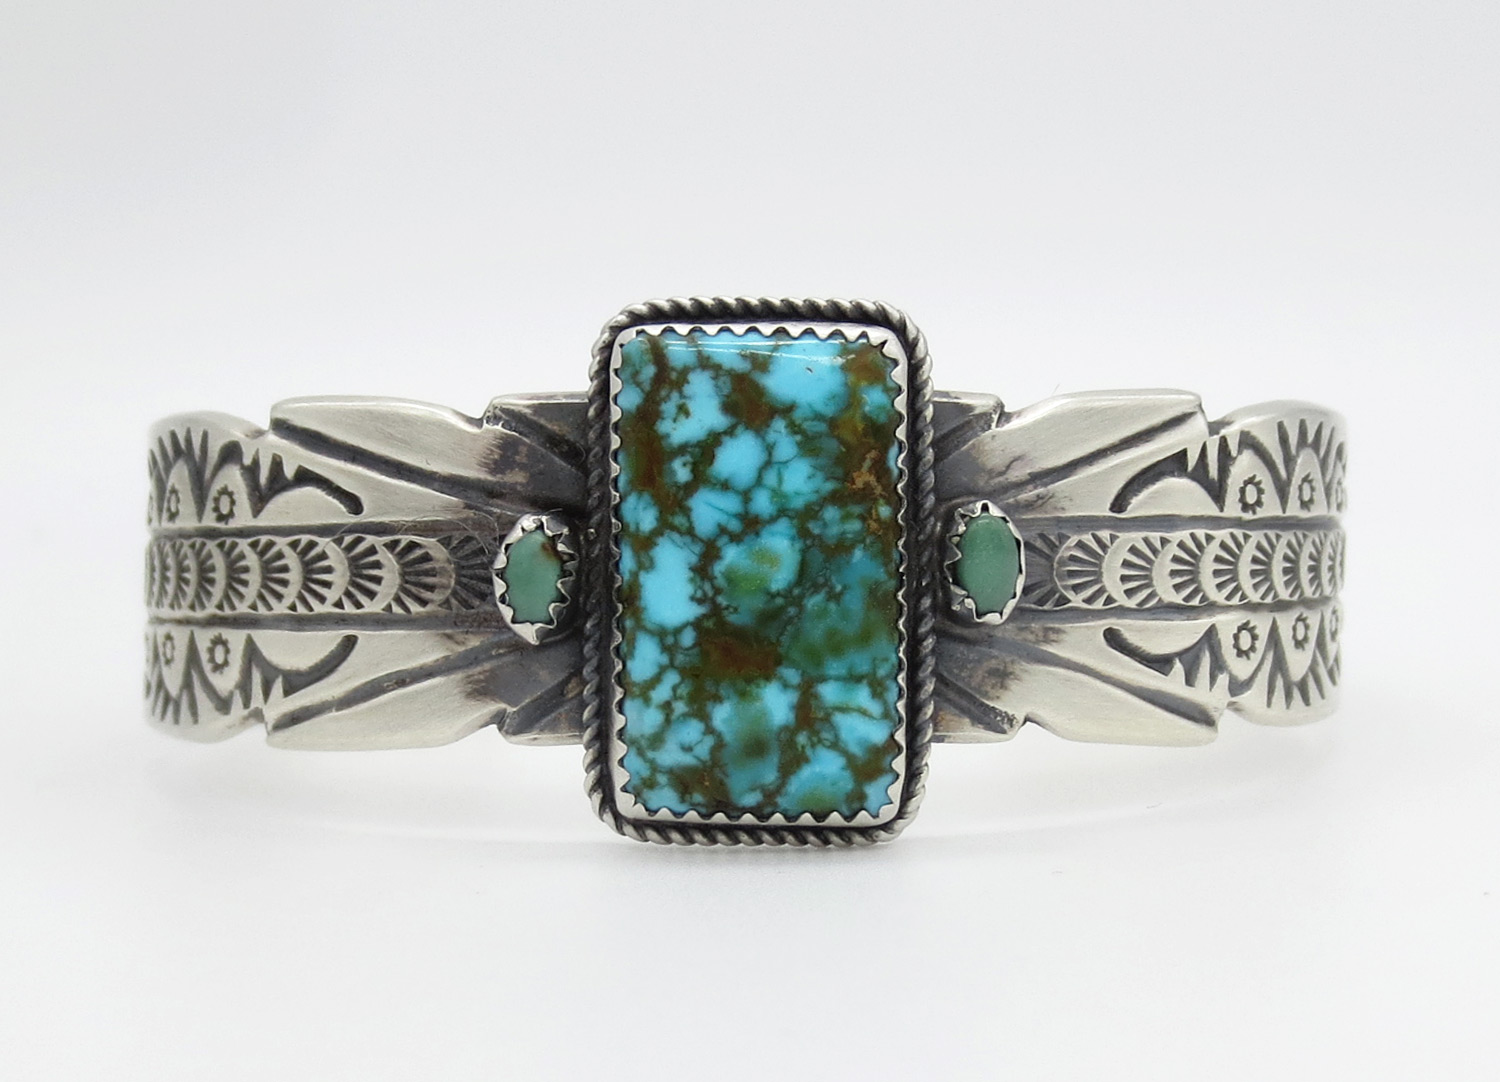 Image 1 of   Large Turquoise & Sterling Silver Bracelet Native American Jewelry - 2130dt